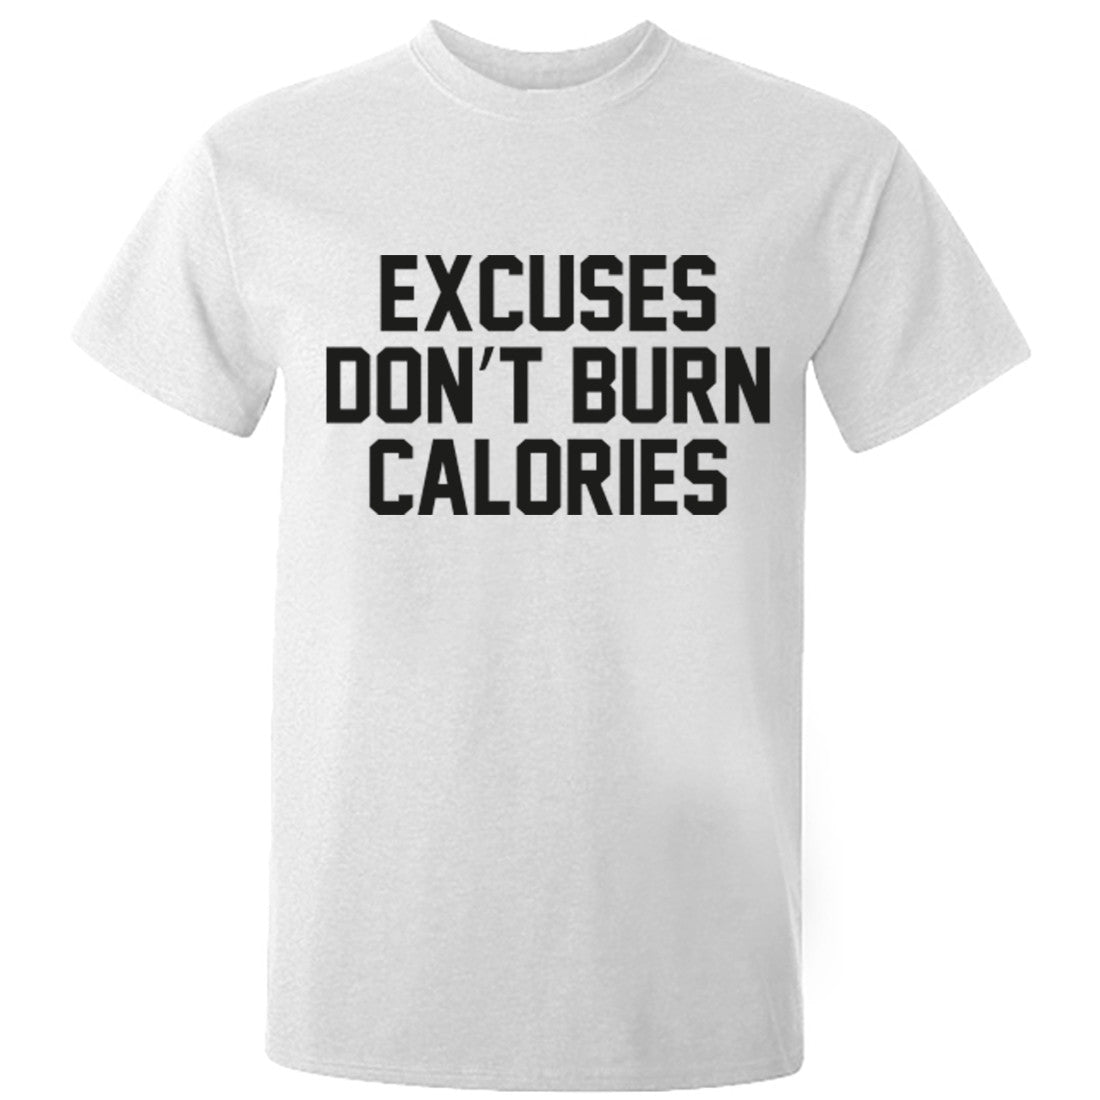 Excuses Don't Burn Calories Unisex Fit T-Shirt K0552 - Illustrated Identity Ltd.